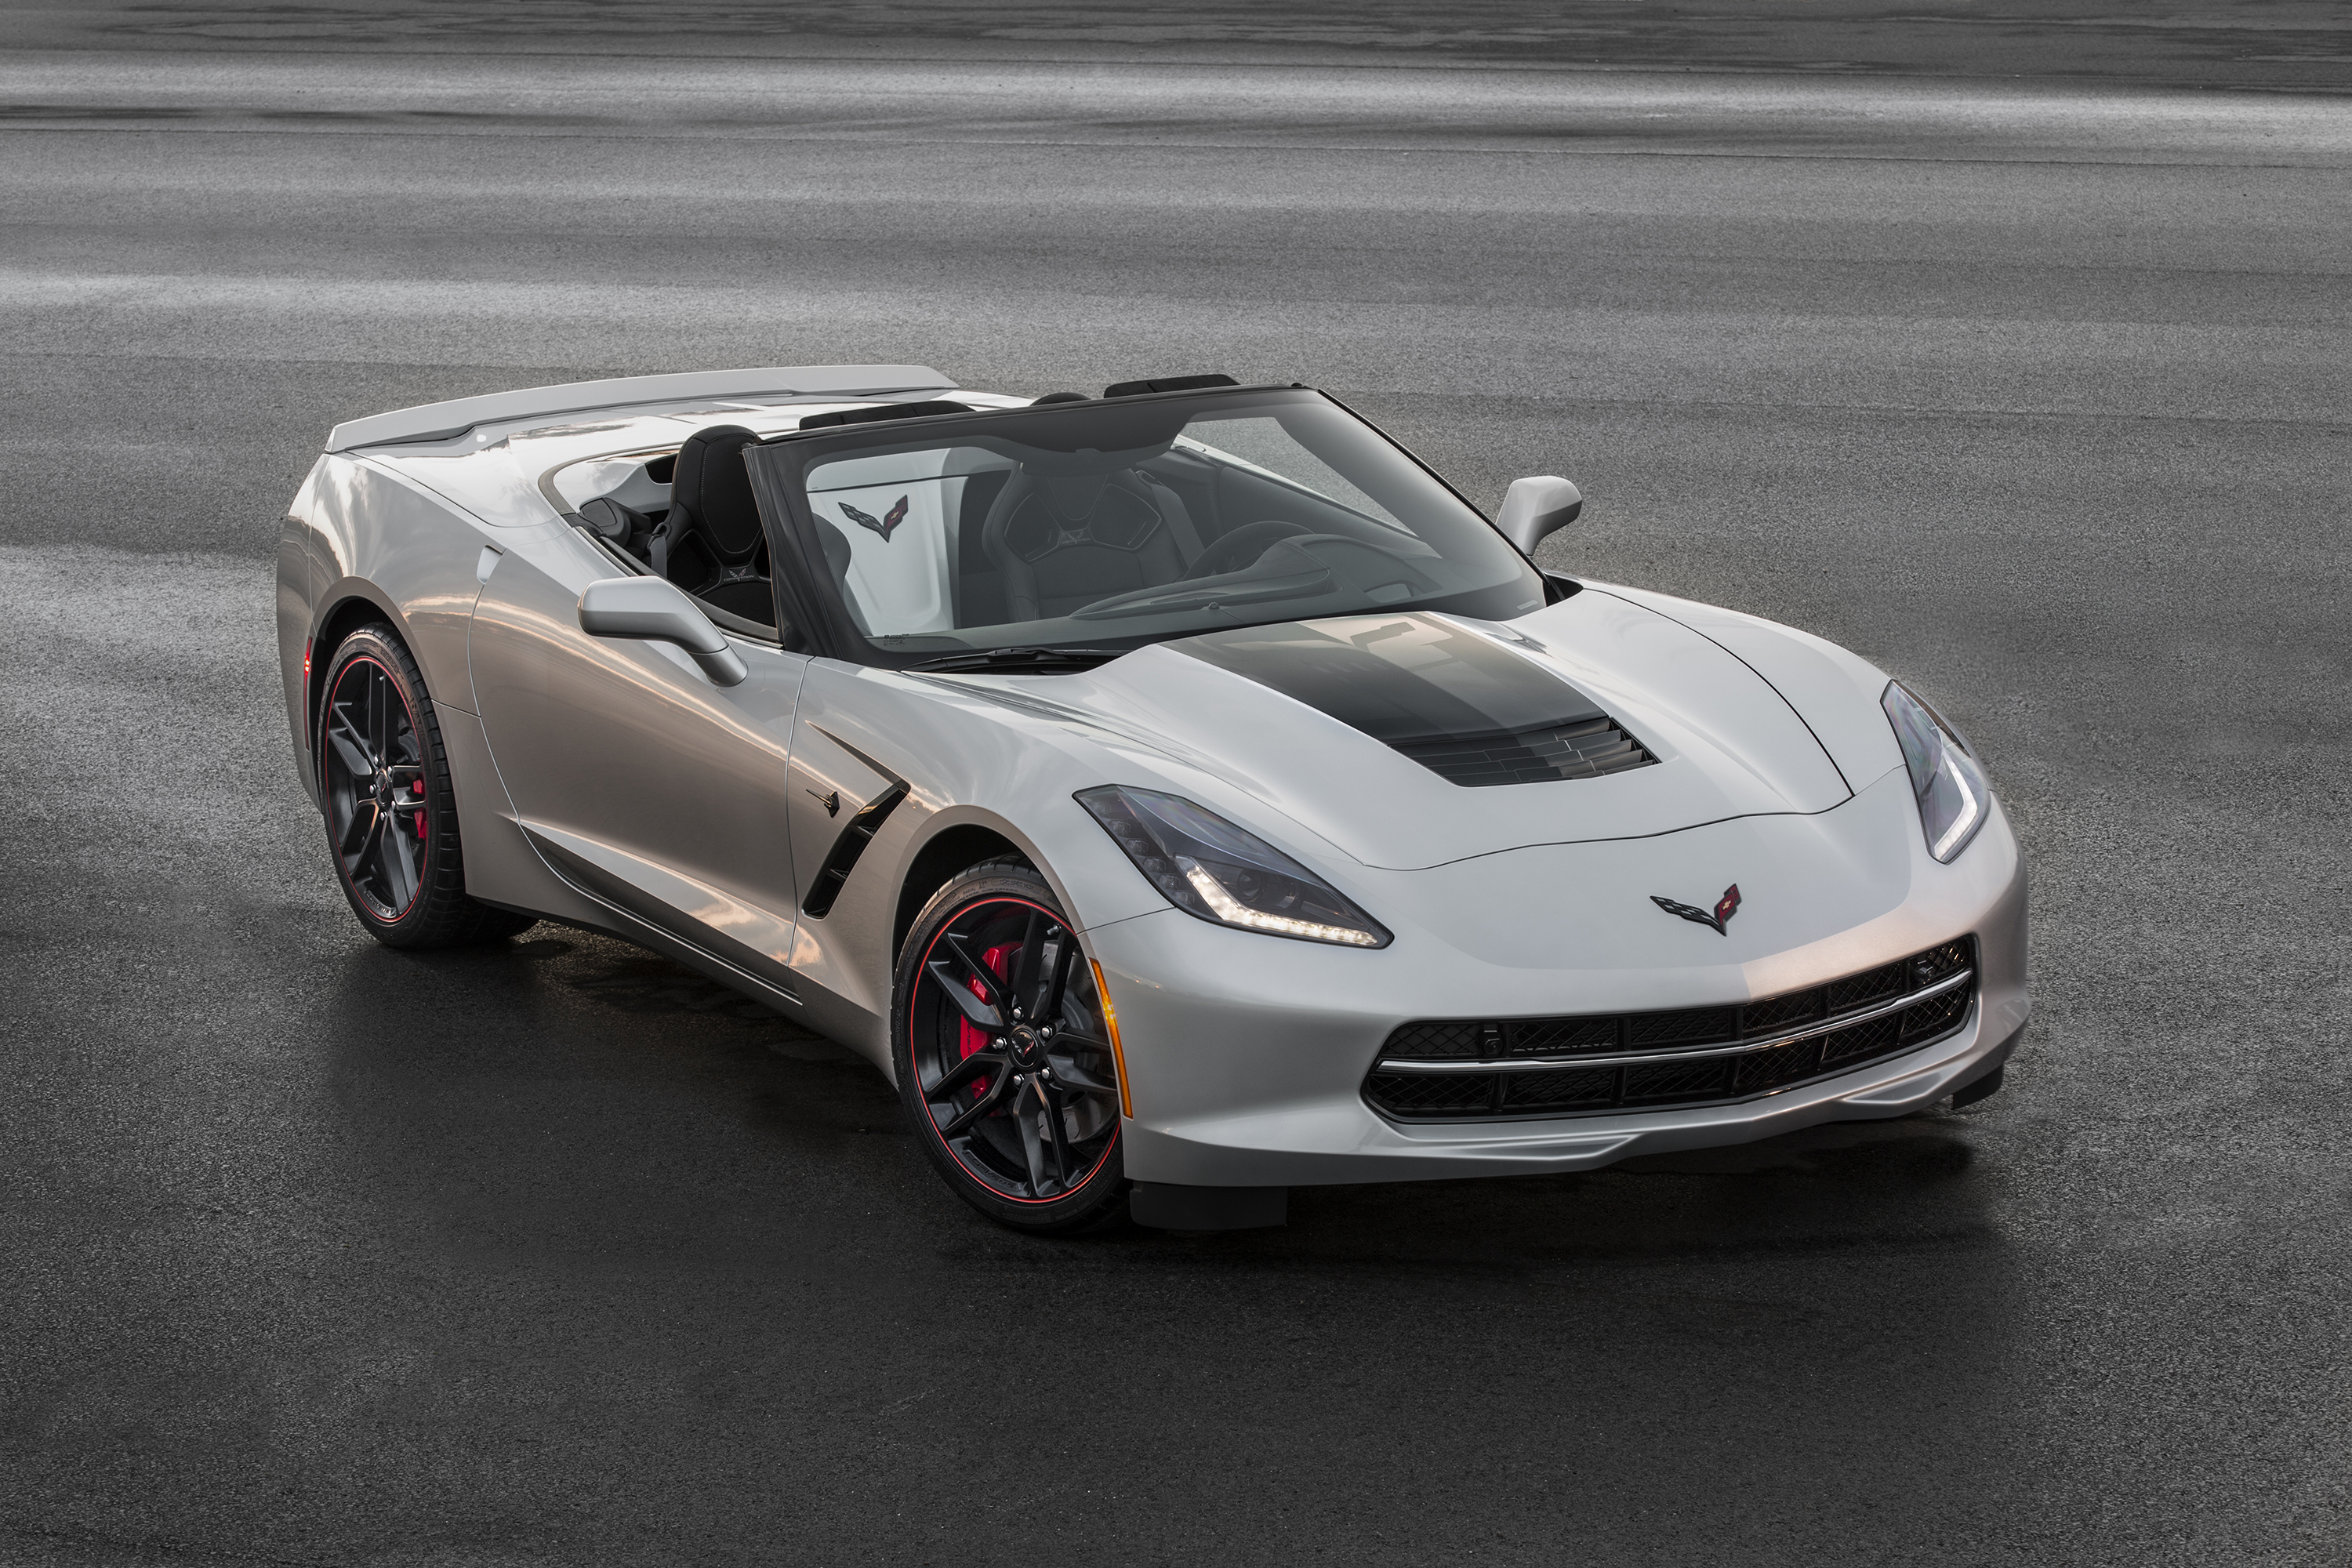 Toyota Models 2015 >> 2016 Corvette Receives Style-Focused Updates » AutoGuide.com News